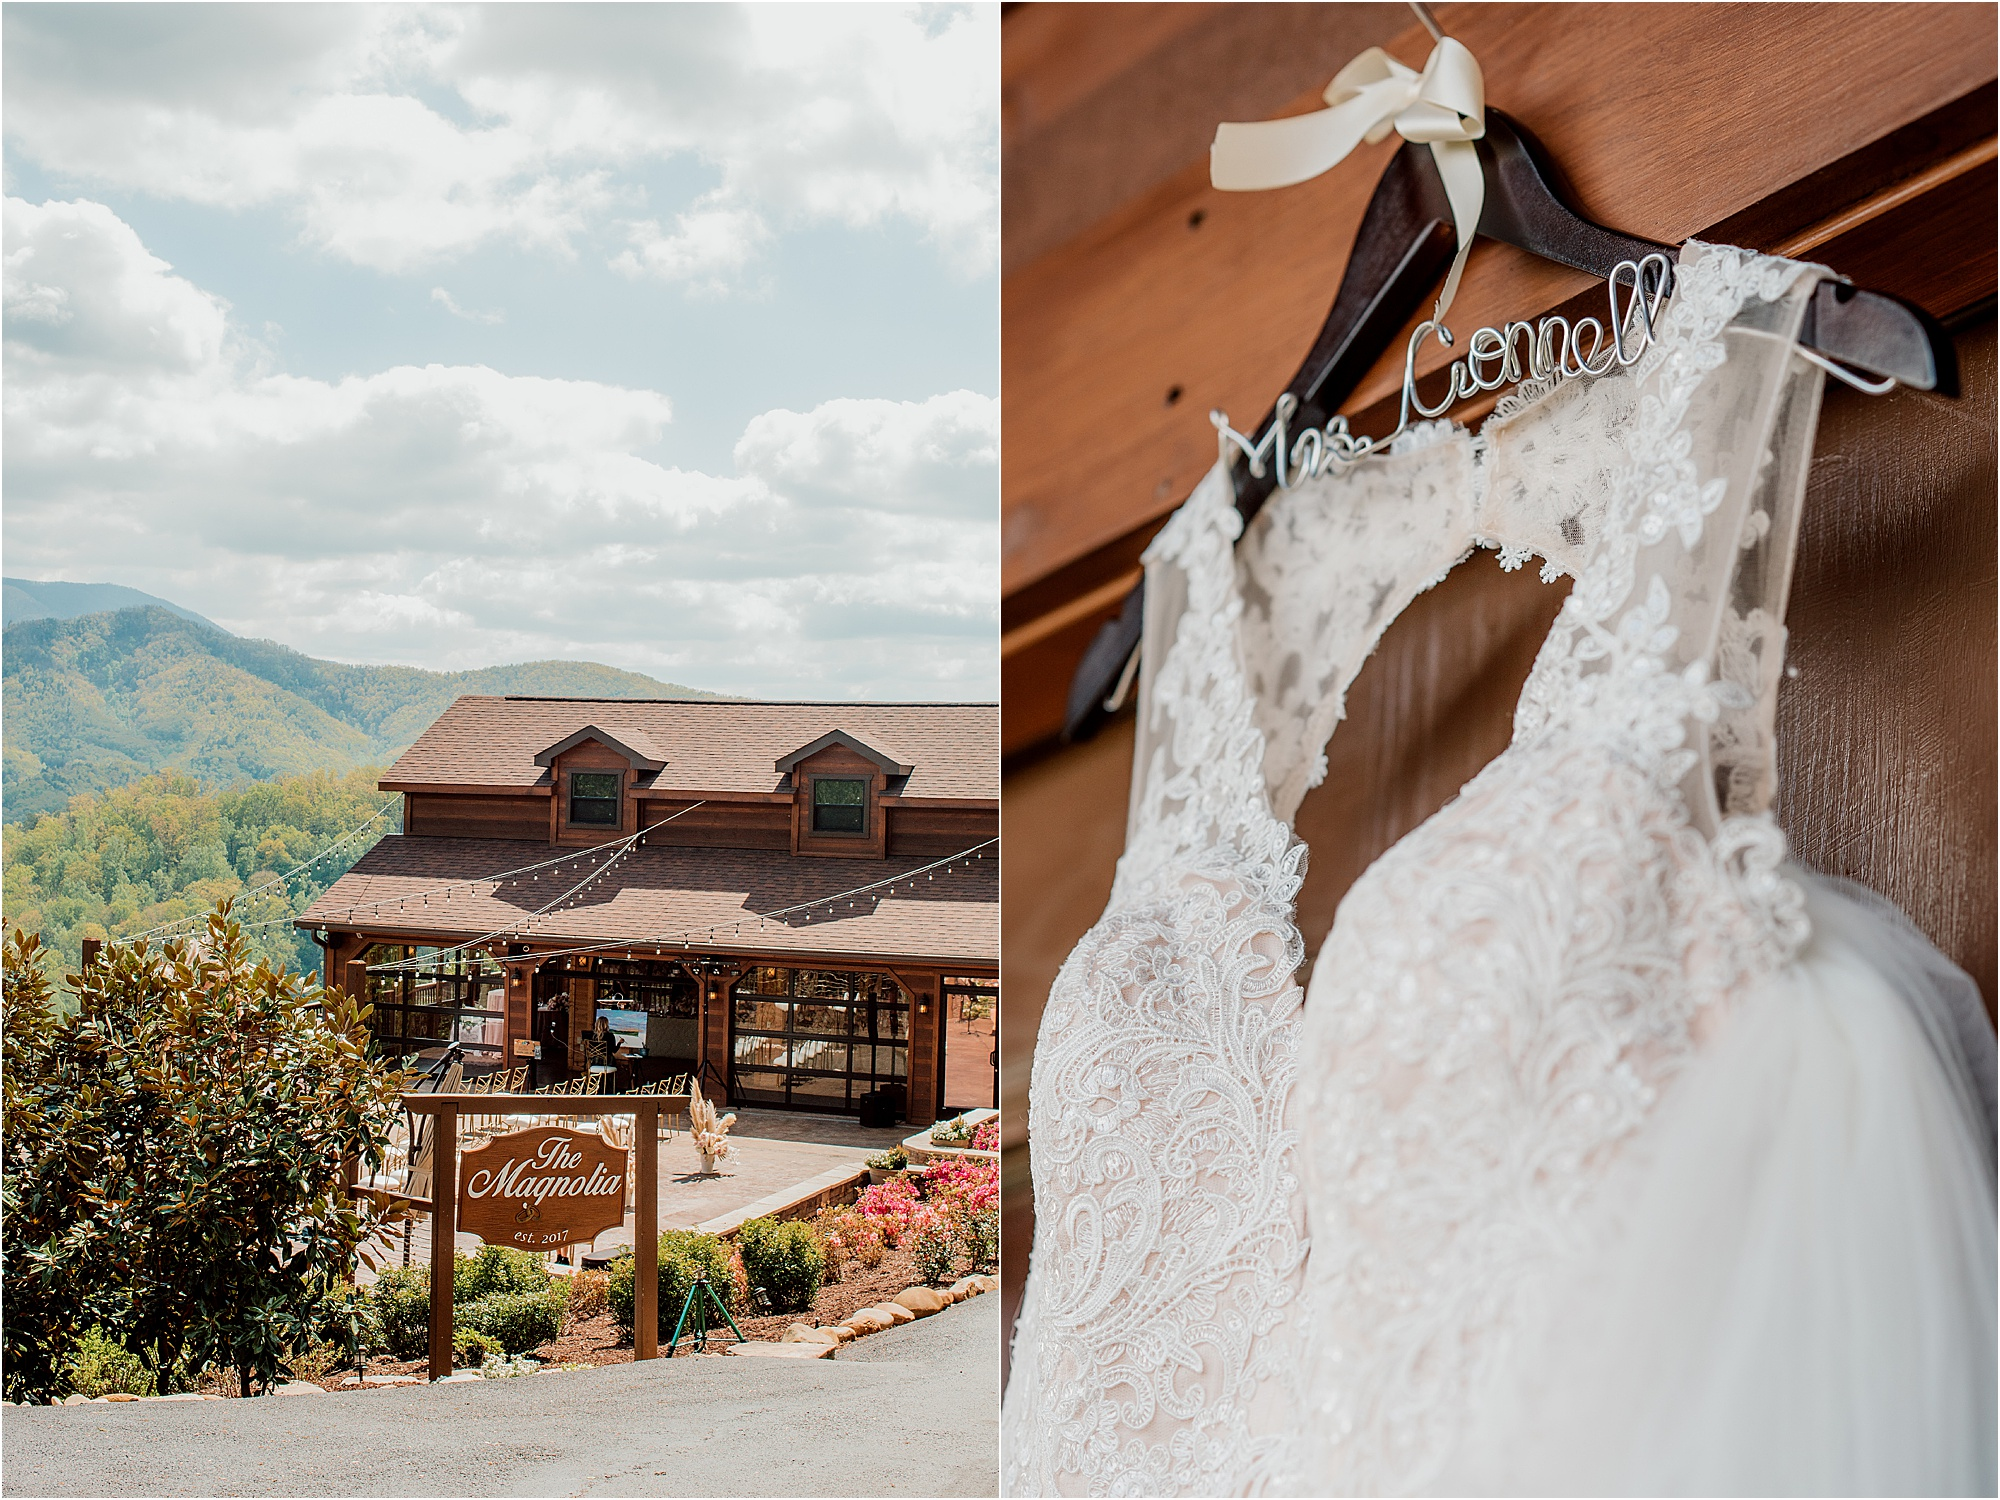 The Magnolia Venue in Pigeon Forge, Tennessee